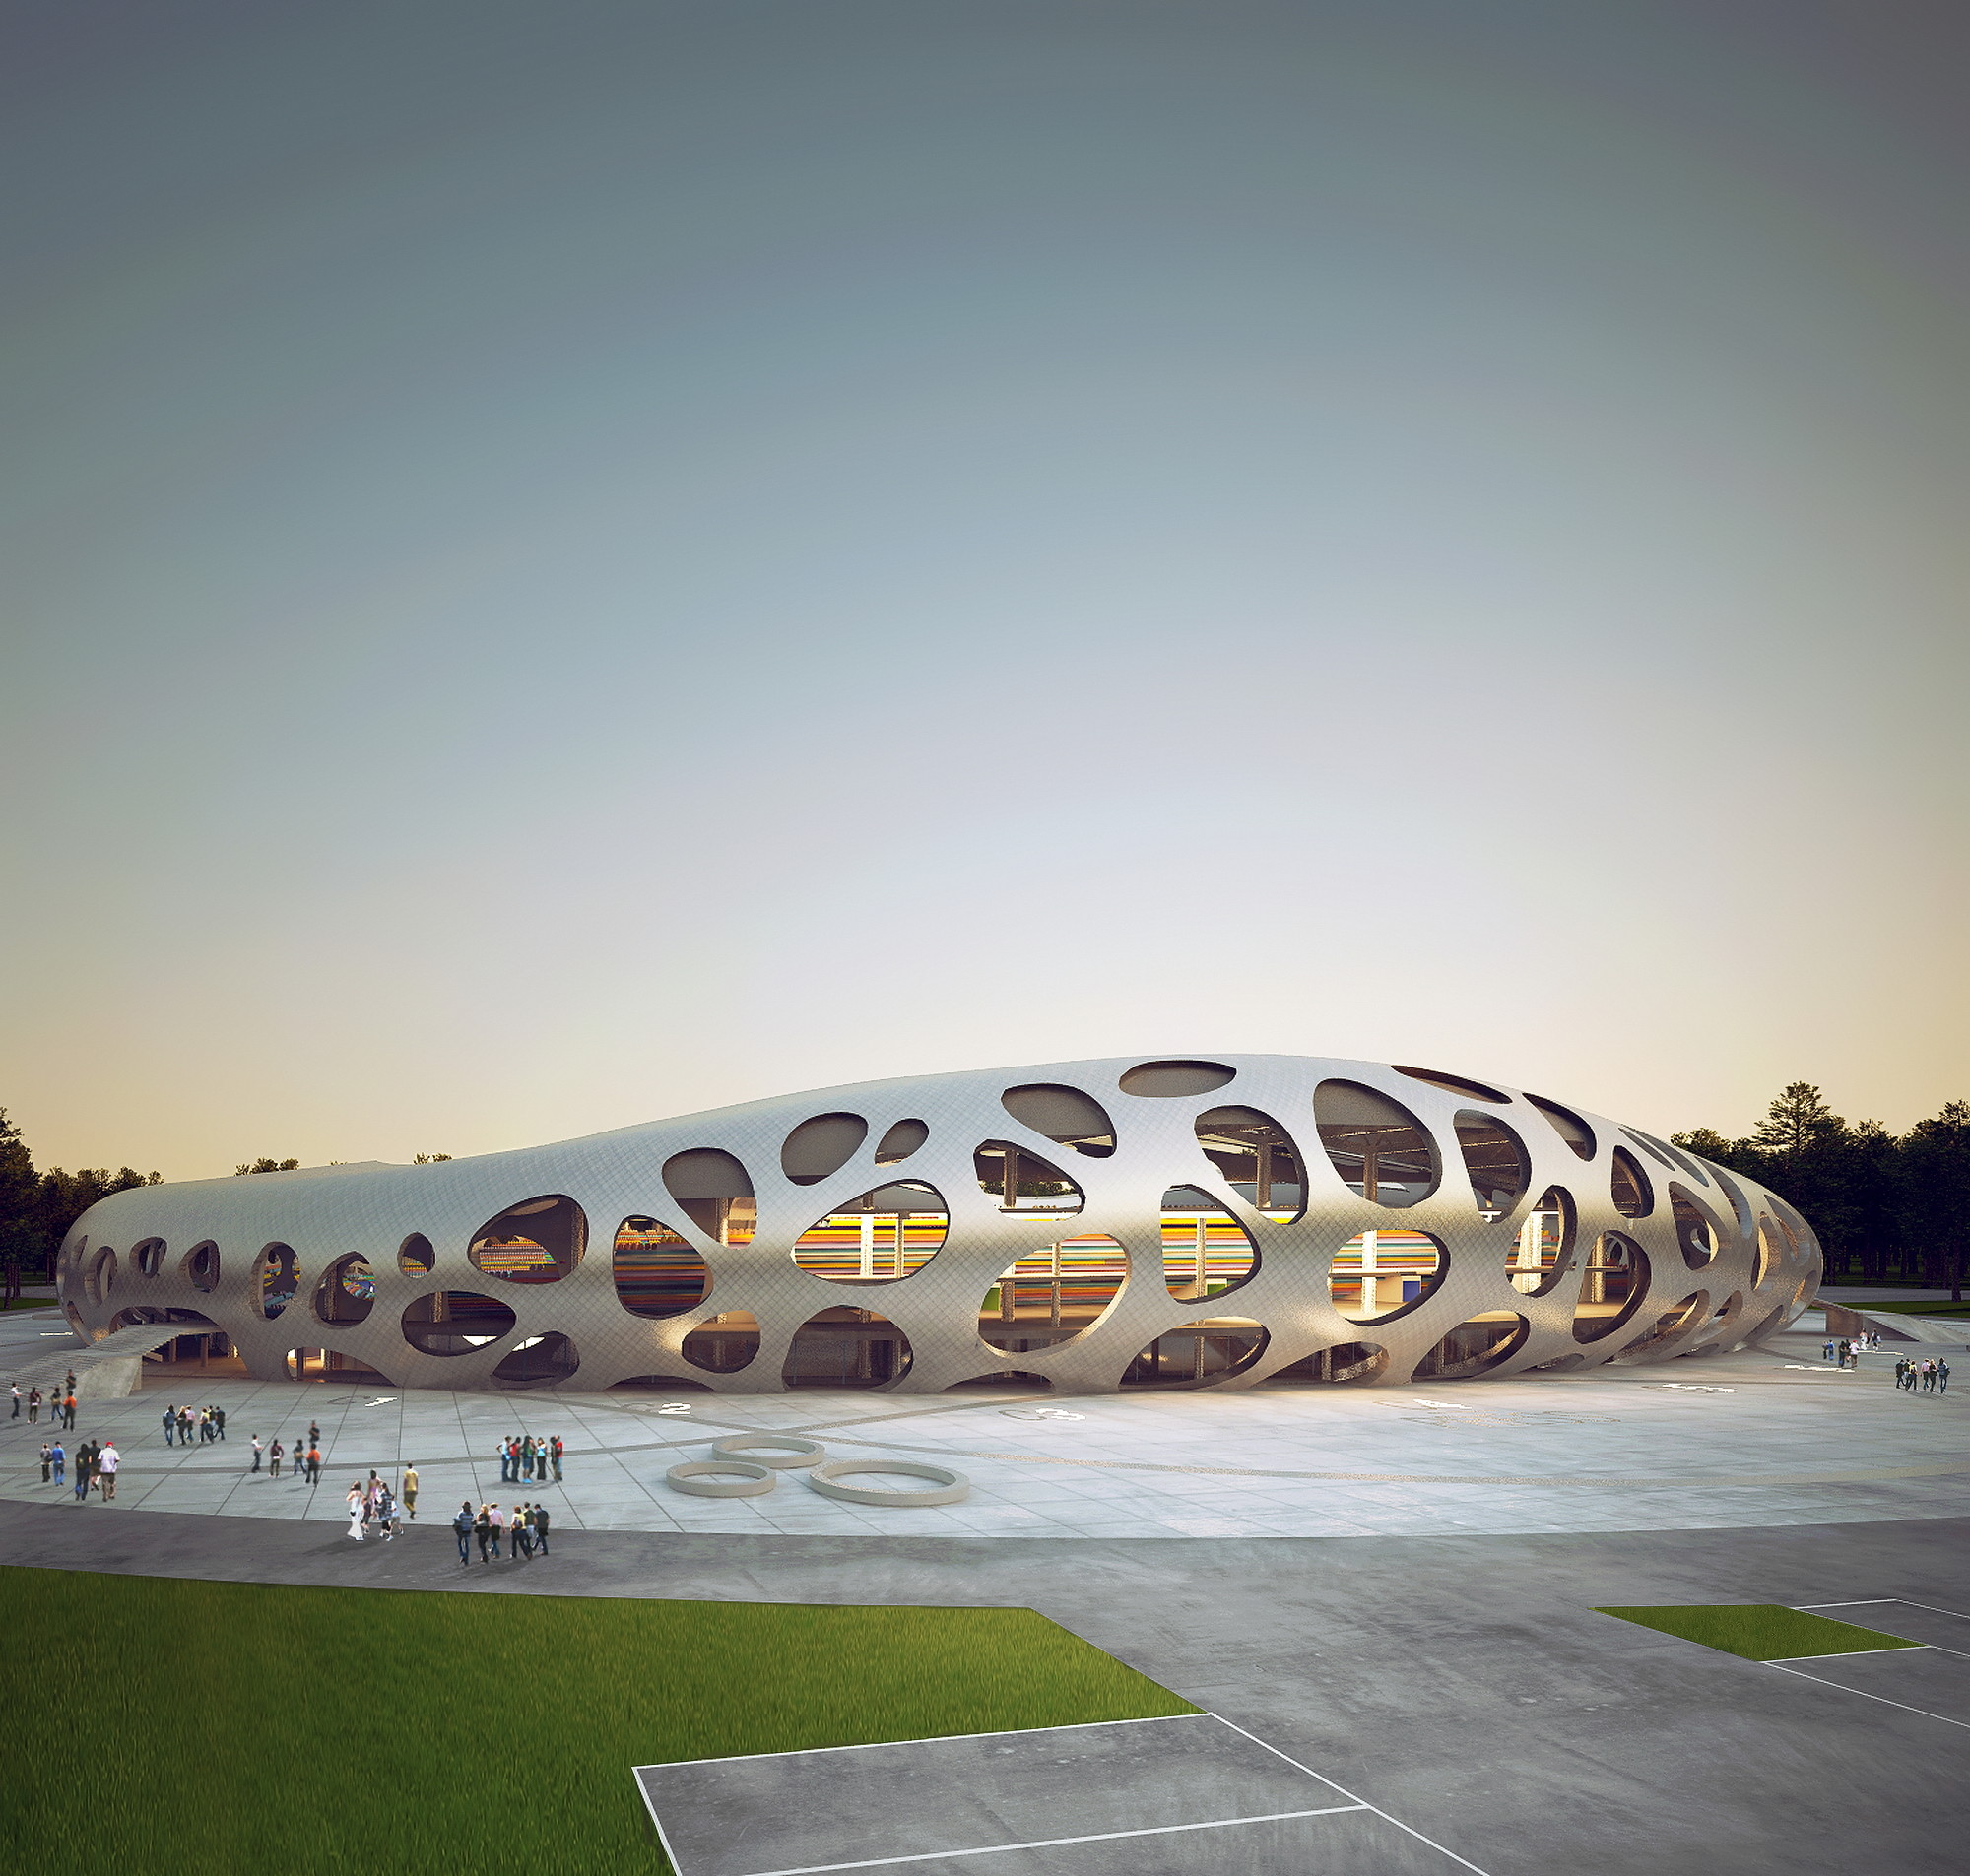 Estadio de Fútbol Borisov / OFIS Architects, Cortesía de OFIS Architects